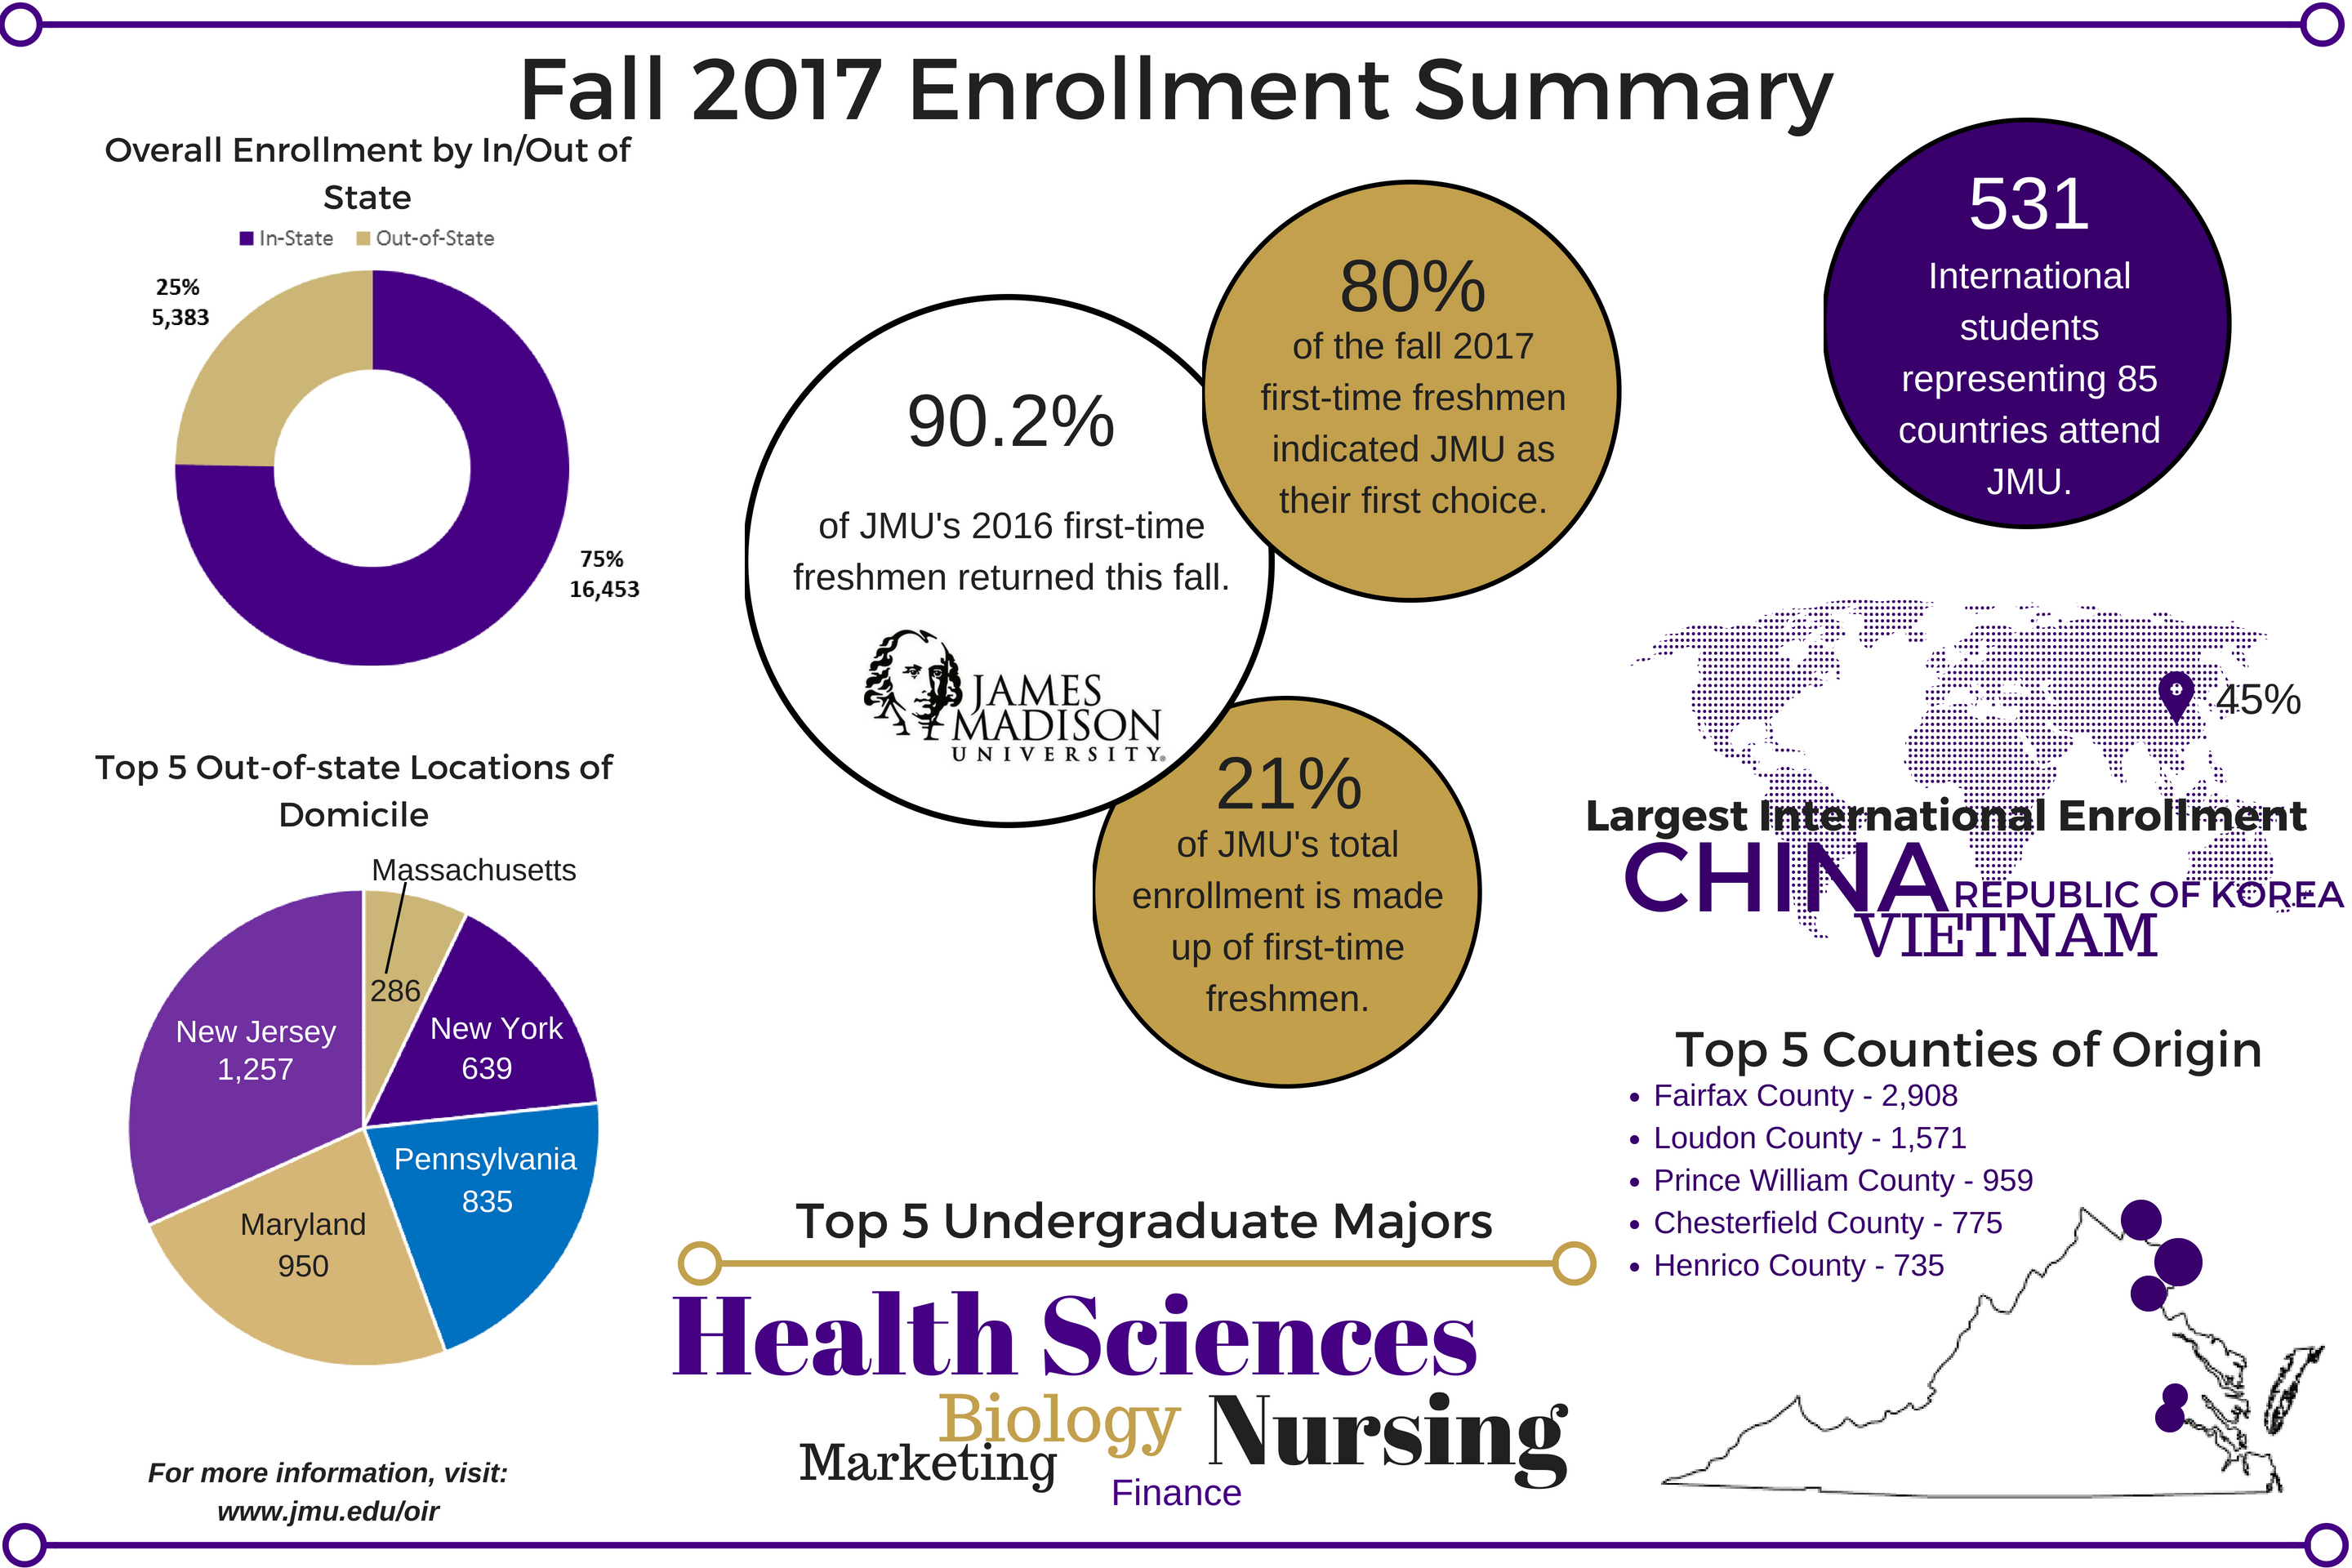 Fall 2017 Enrollment Infographic